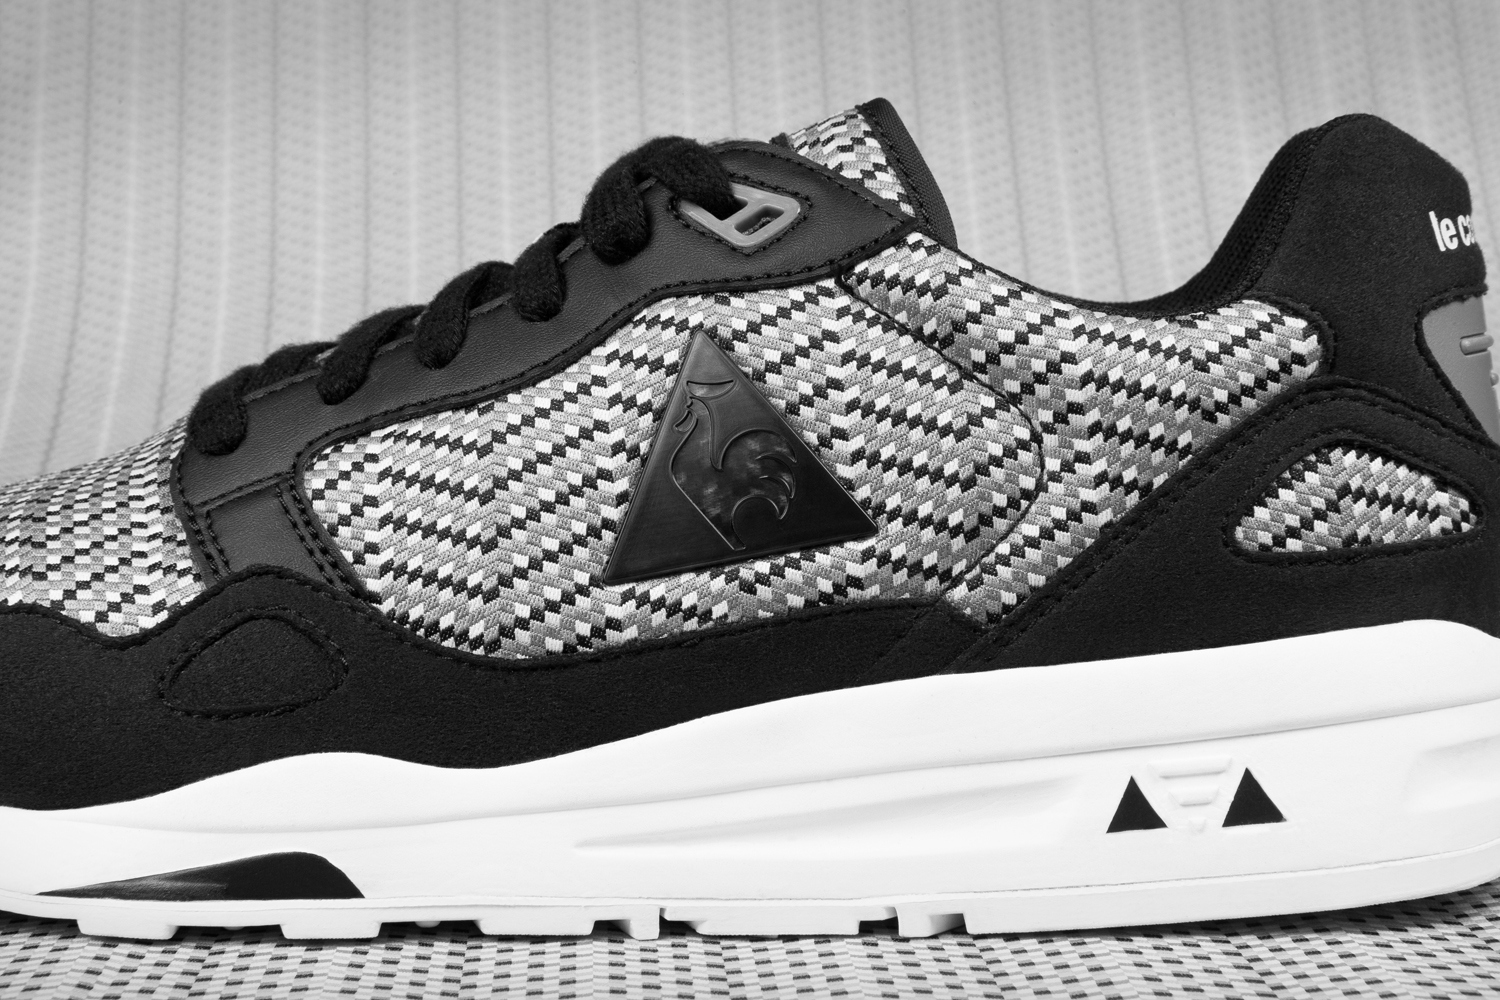 le coq sportif lcs r900 jacquard disponible sneakers. Black Bedroom Furniture Sets. Home Design Ideas